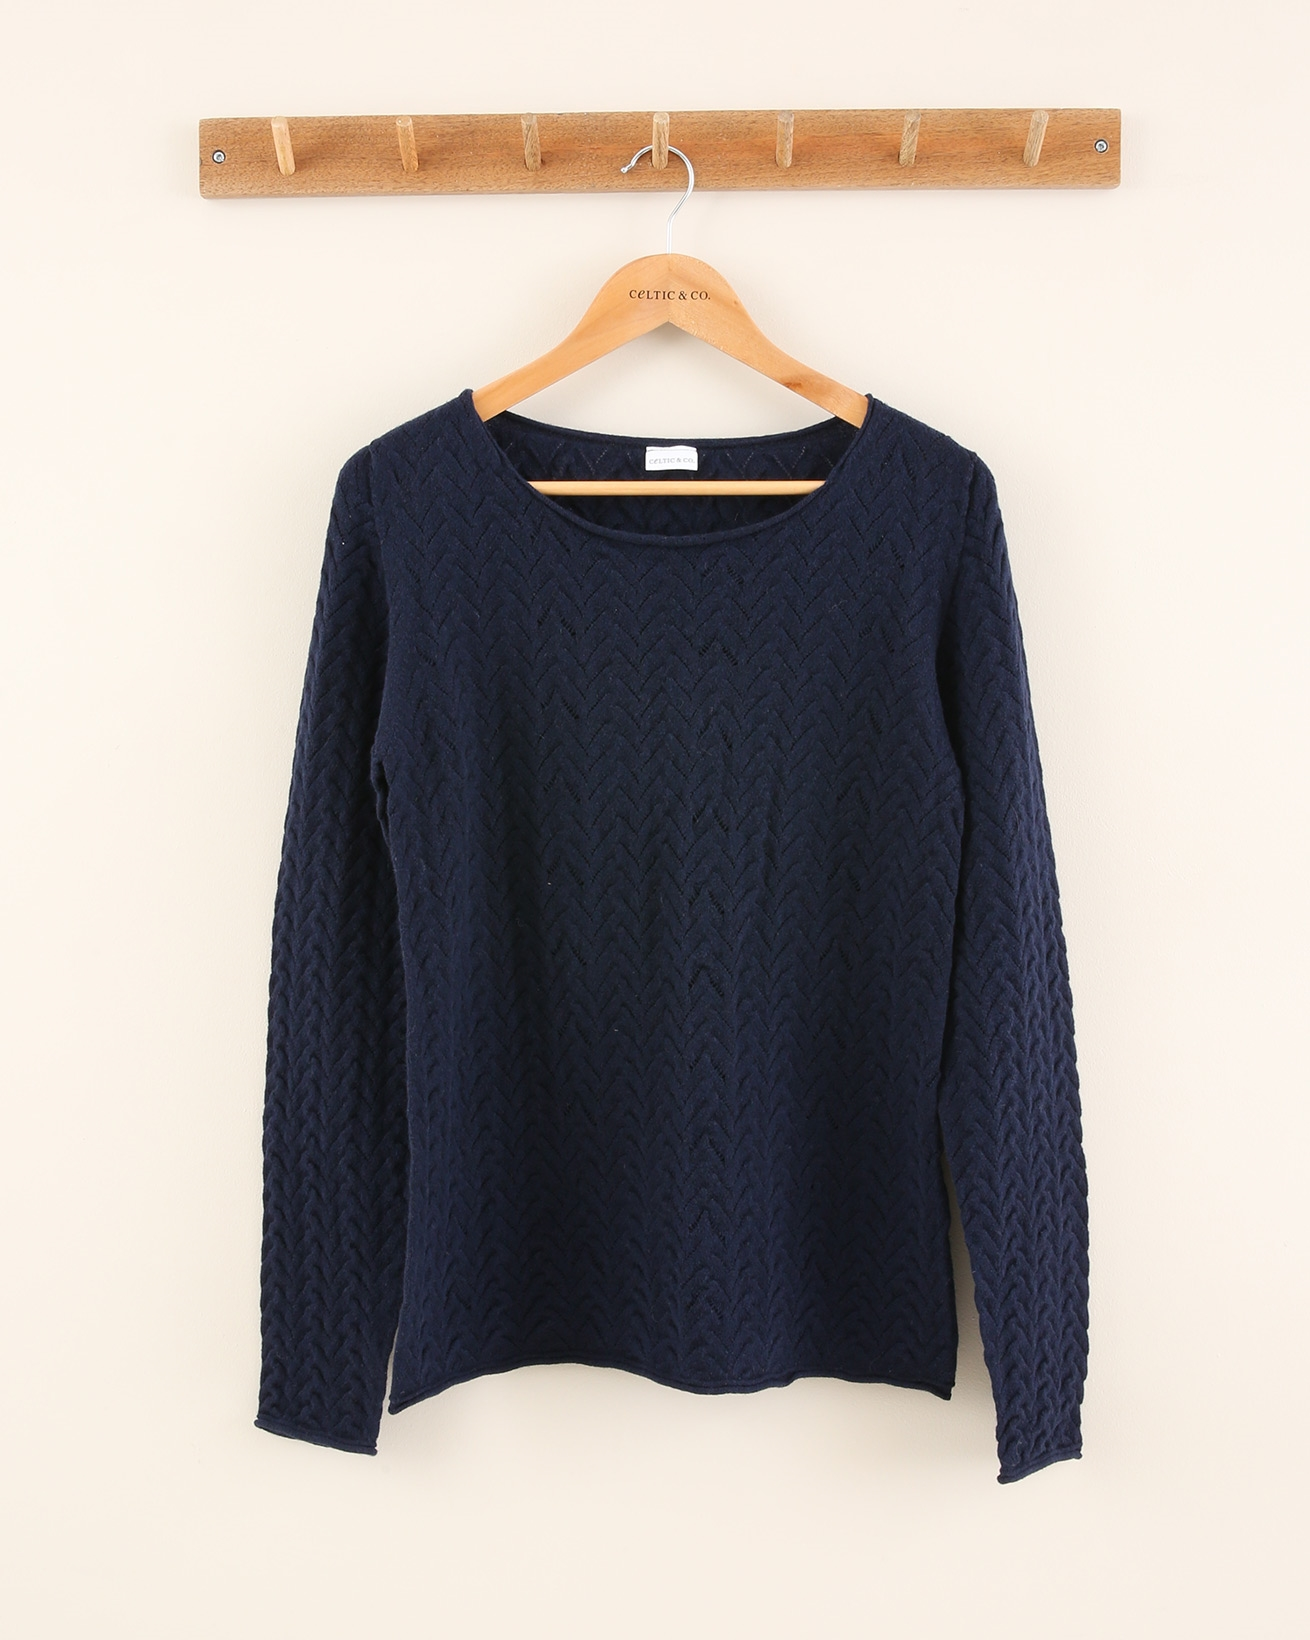 1872-chevron-pointelle-crew-neck-jumper-dark-navy.jpg